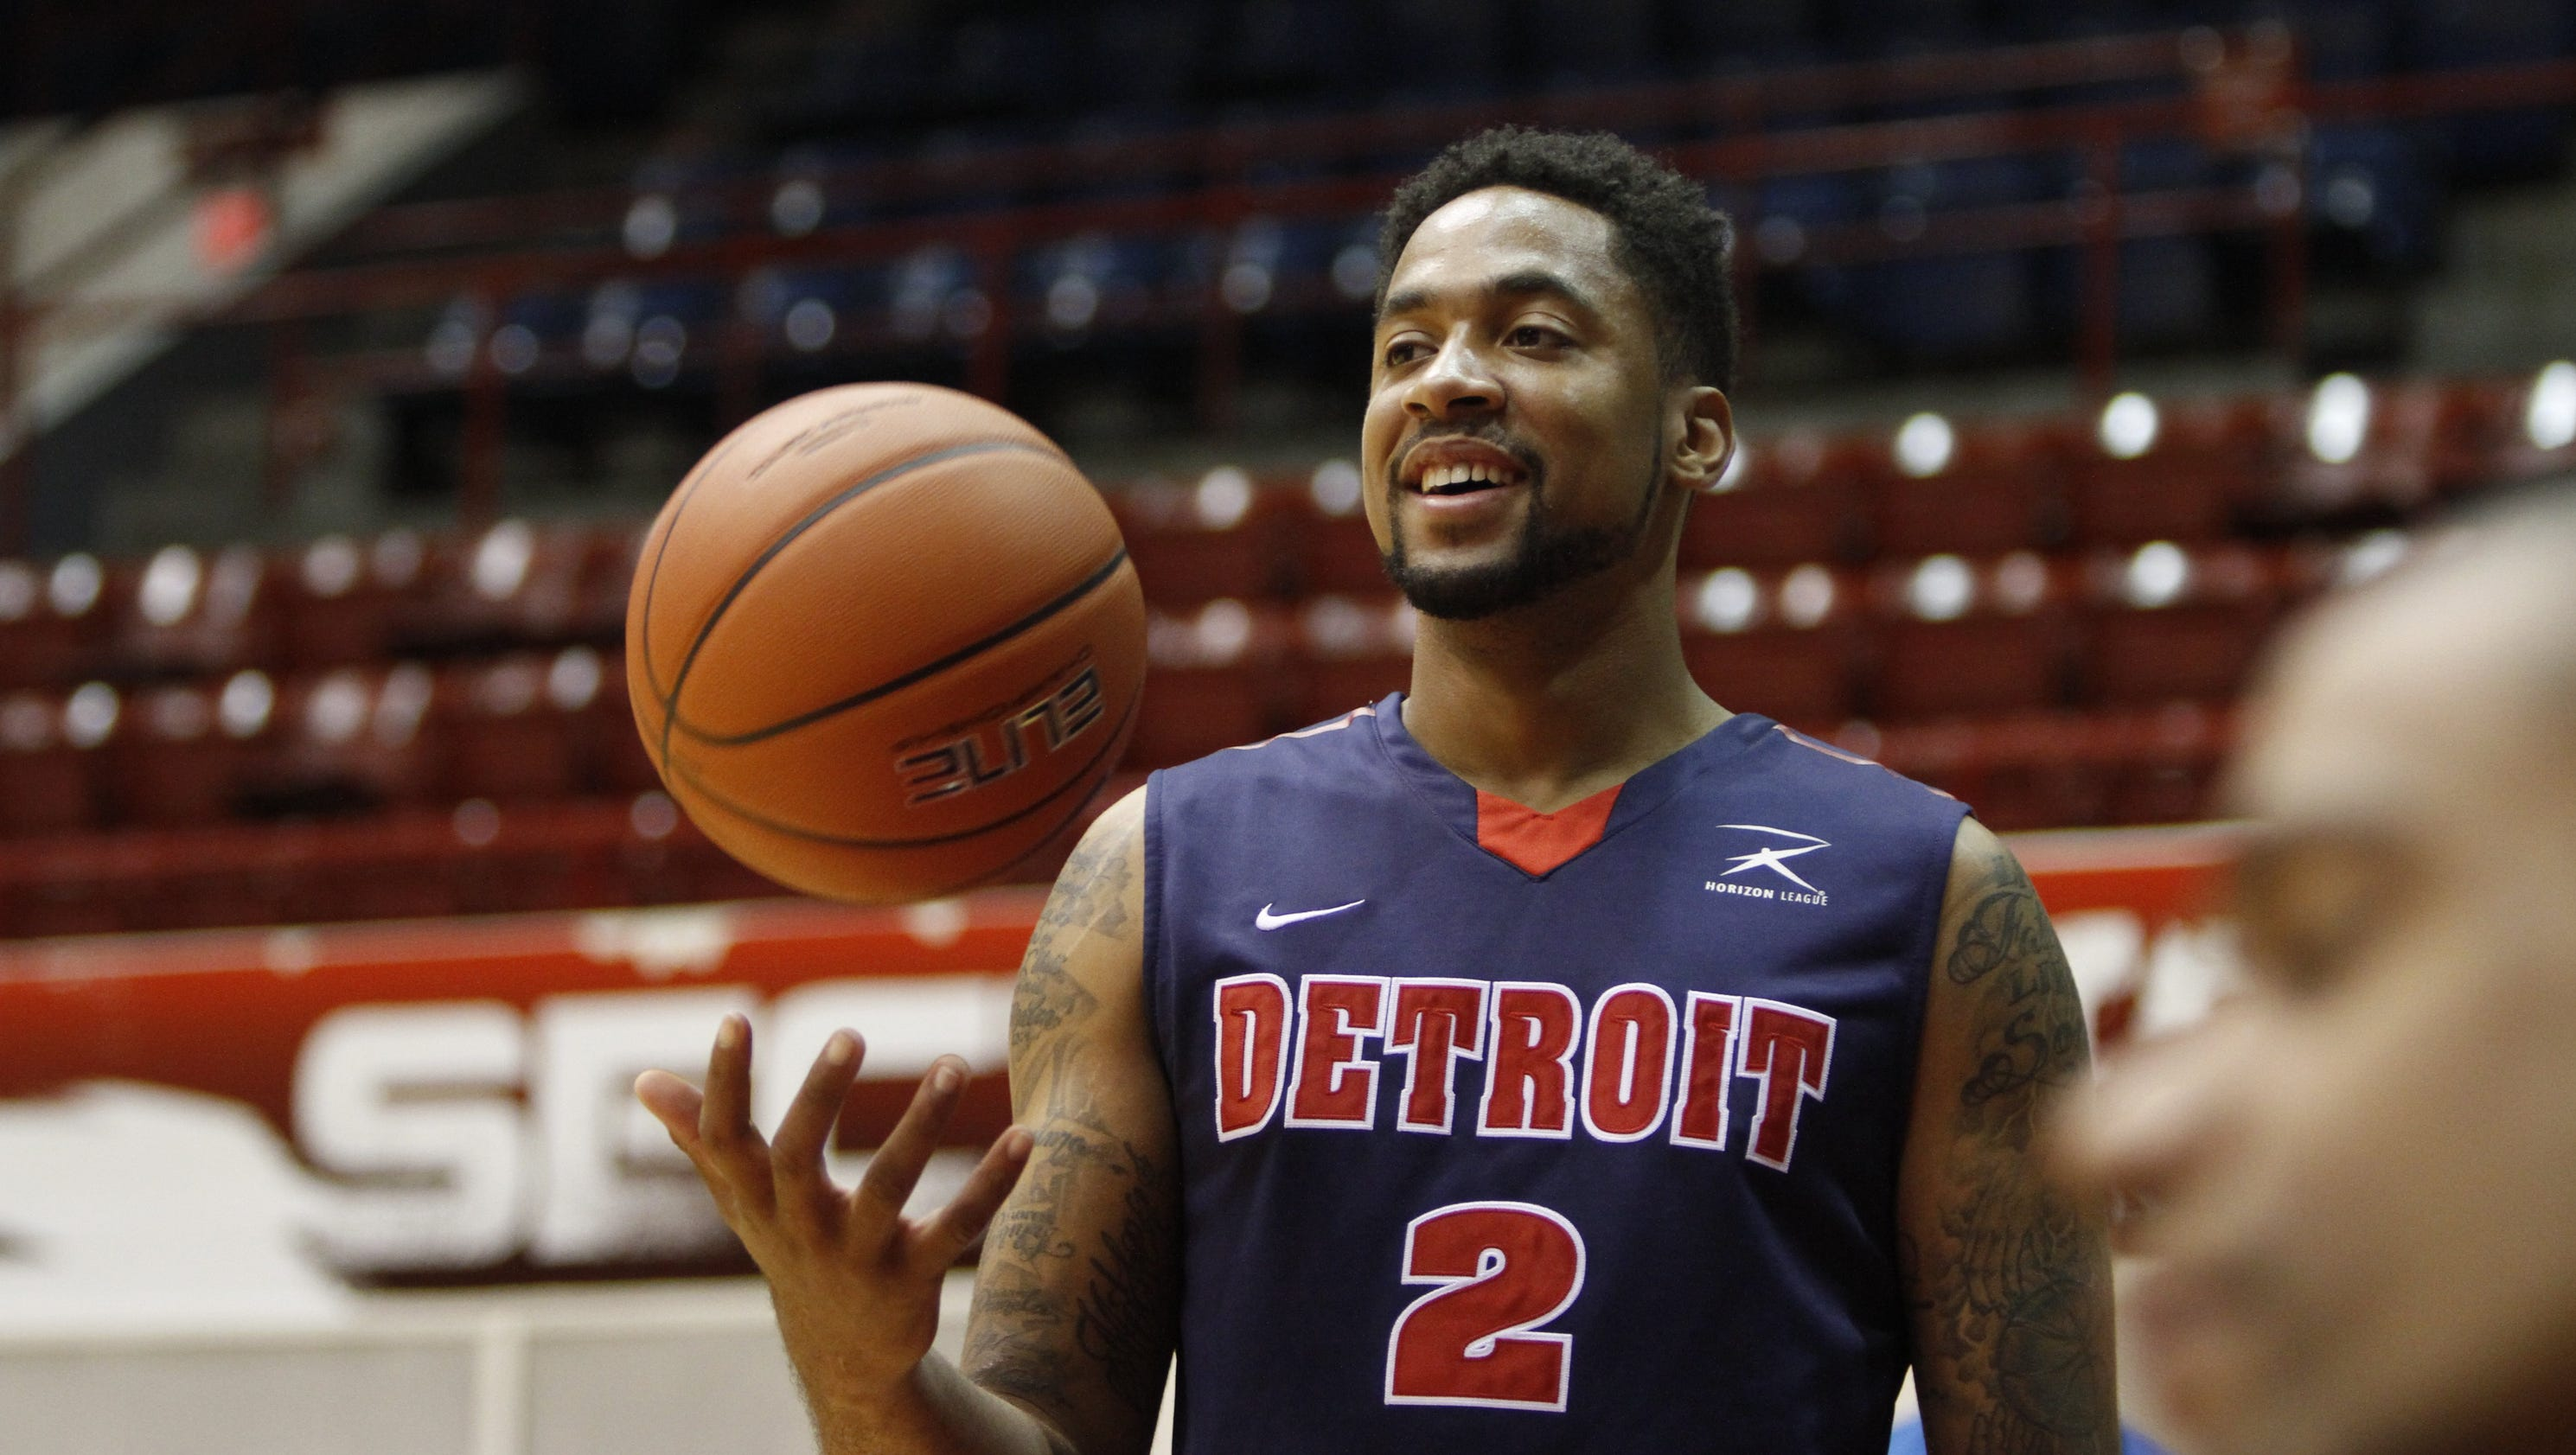 Detroit Mercy s Juwan Howard Jr has deep Michigan roots